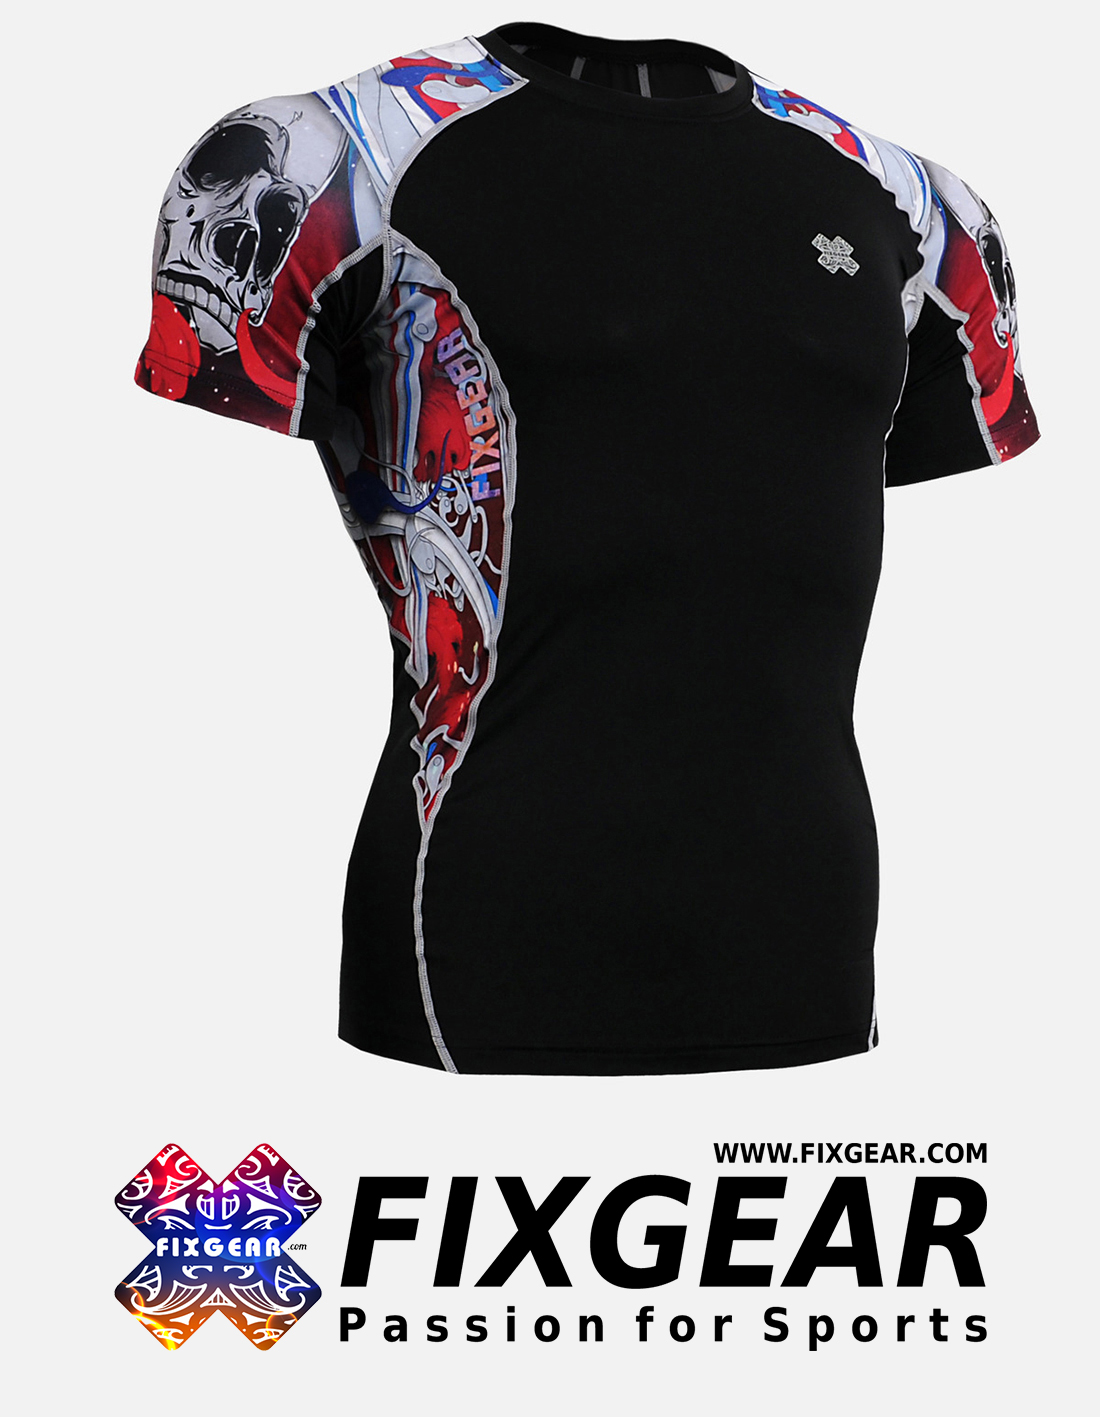 FIXGEAR C2S-B19R Compression Base Layer Shirt Short Sleeve